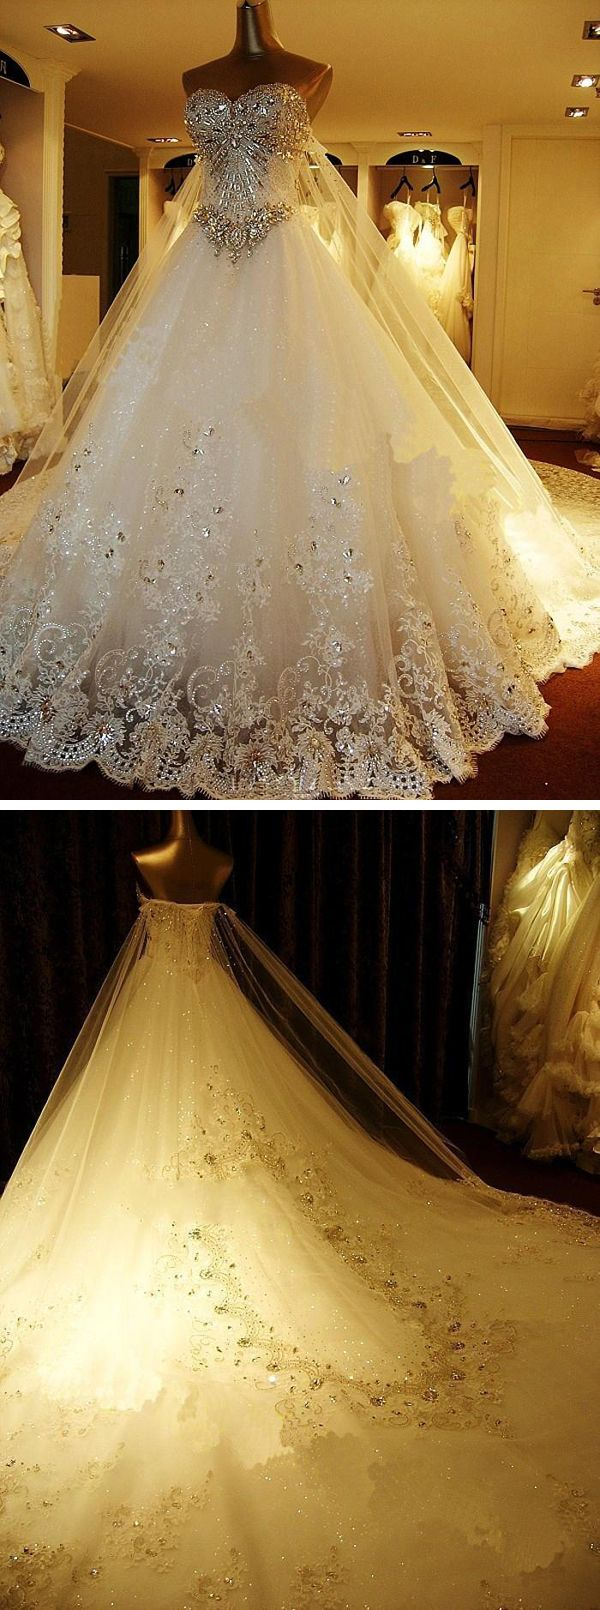 Beaded Luxury Wedding Dress With Looooong Trains!!! Click the link to get it!